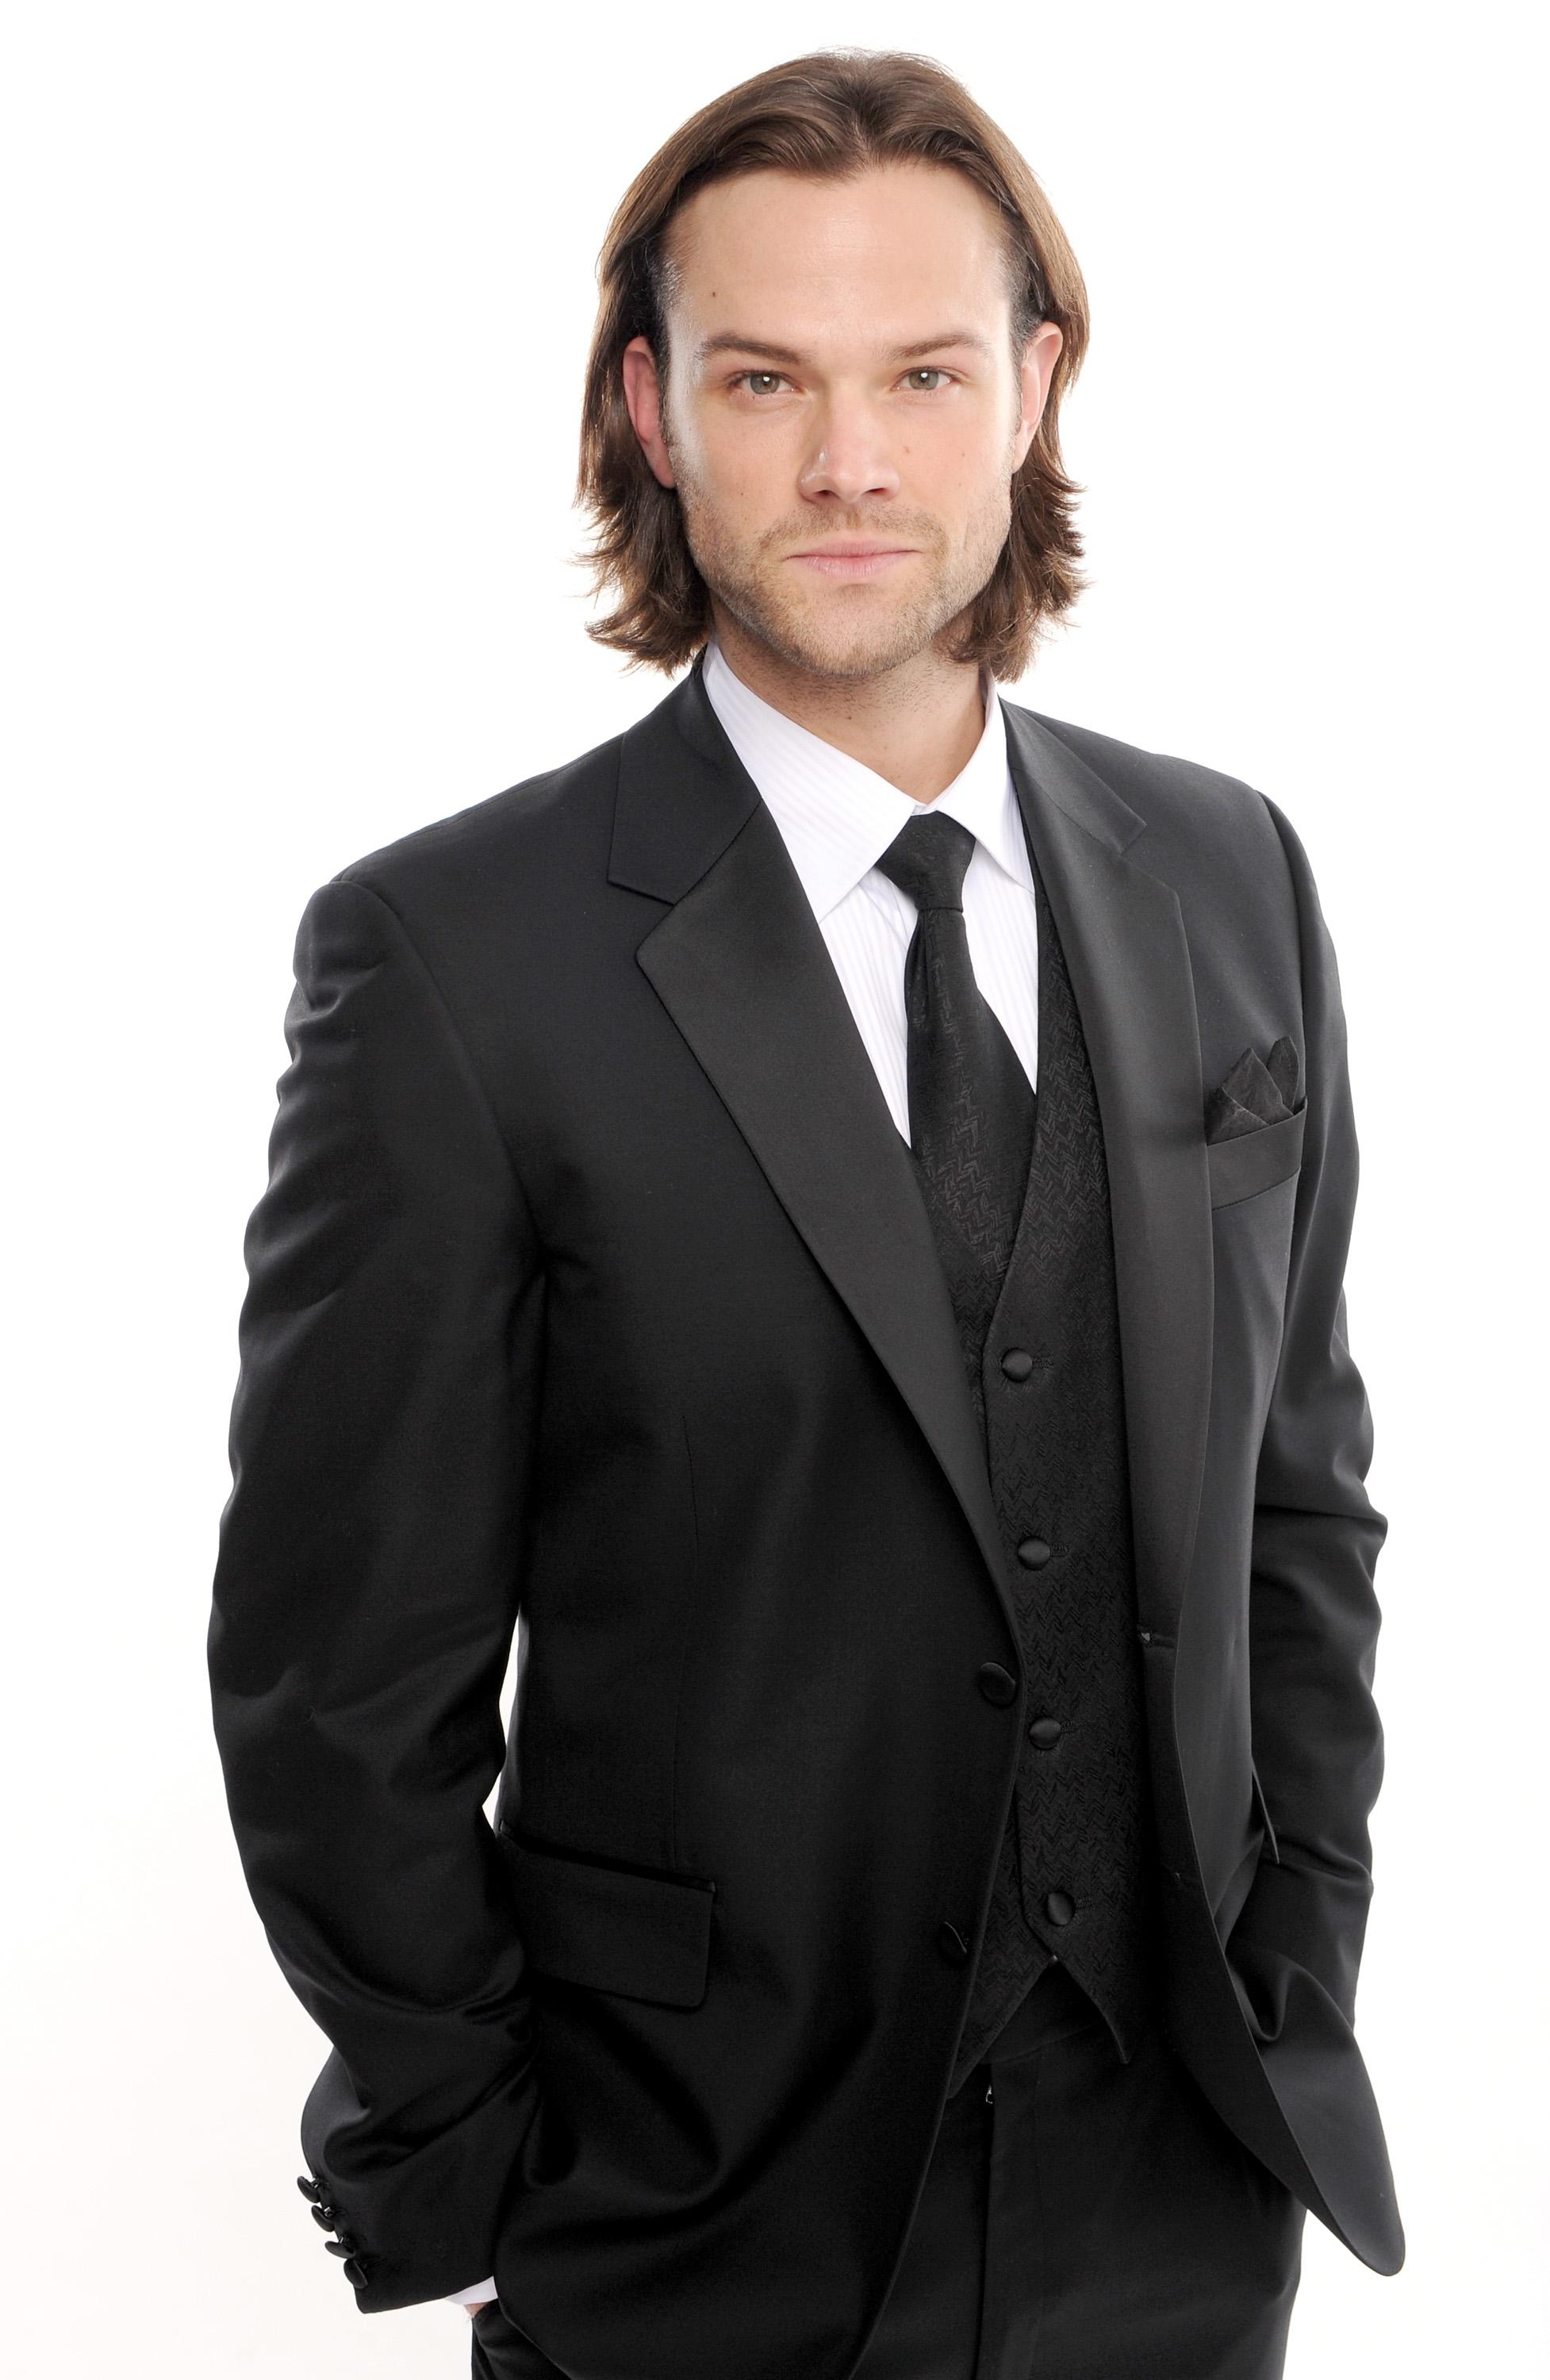 http://images6.fanpop.com/image/photos/37200000/19th-Annual-Critic-s-Choice-Awards-Portrait-Session-jared-padalecki-and-jensen-ackles-37244040-1954-3000.jpg